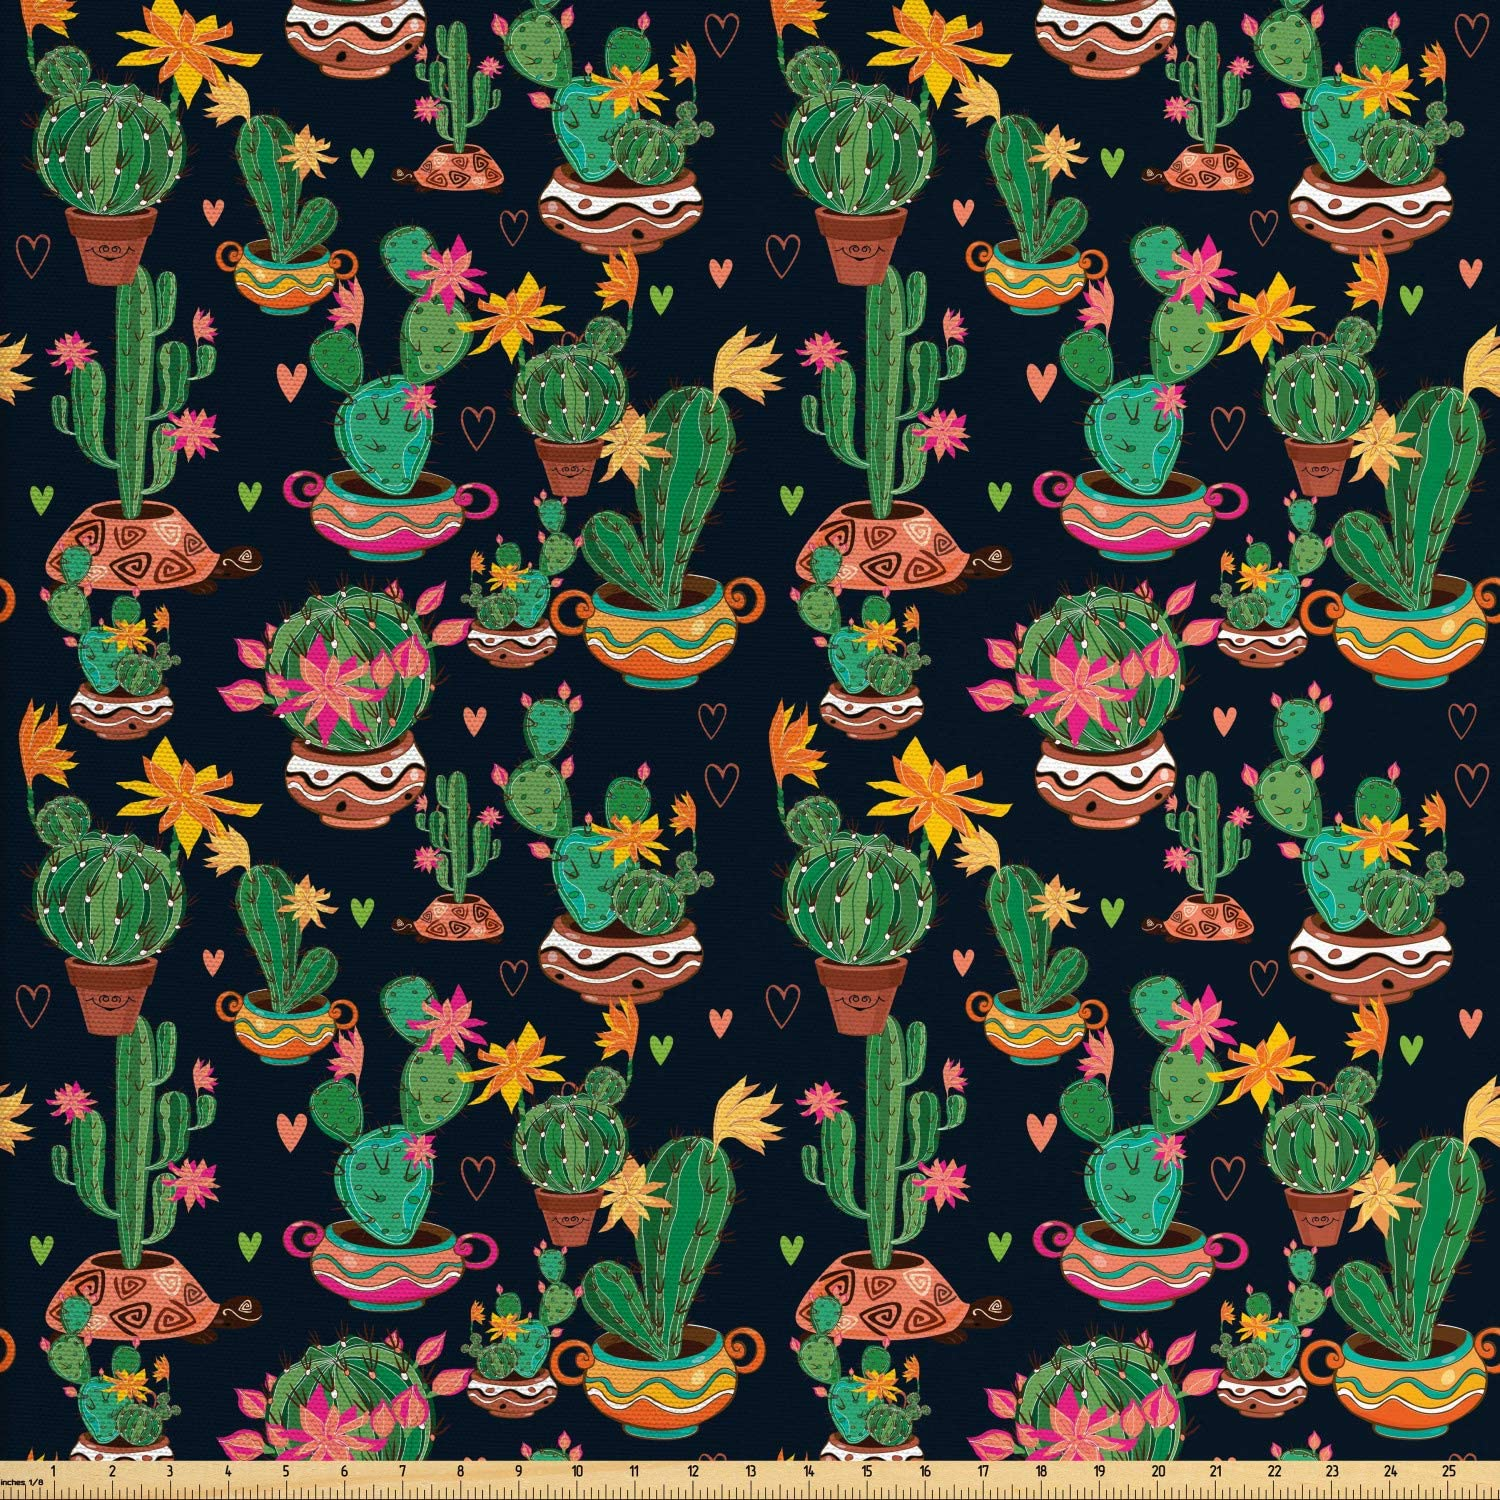 Ambesonne Cactus Print Fabric by The Yard, Colorful Layout of Different Shapes of Cacti with Flowers, Decorative Fabric for Upholstery and Home Accents, 1 Yard, Charcoal Grey